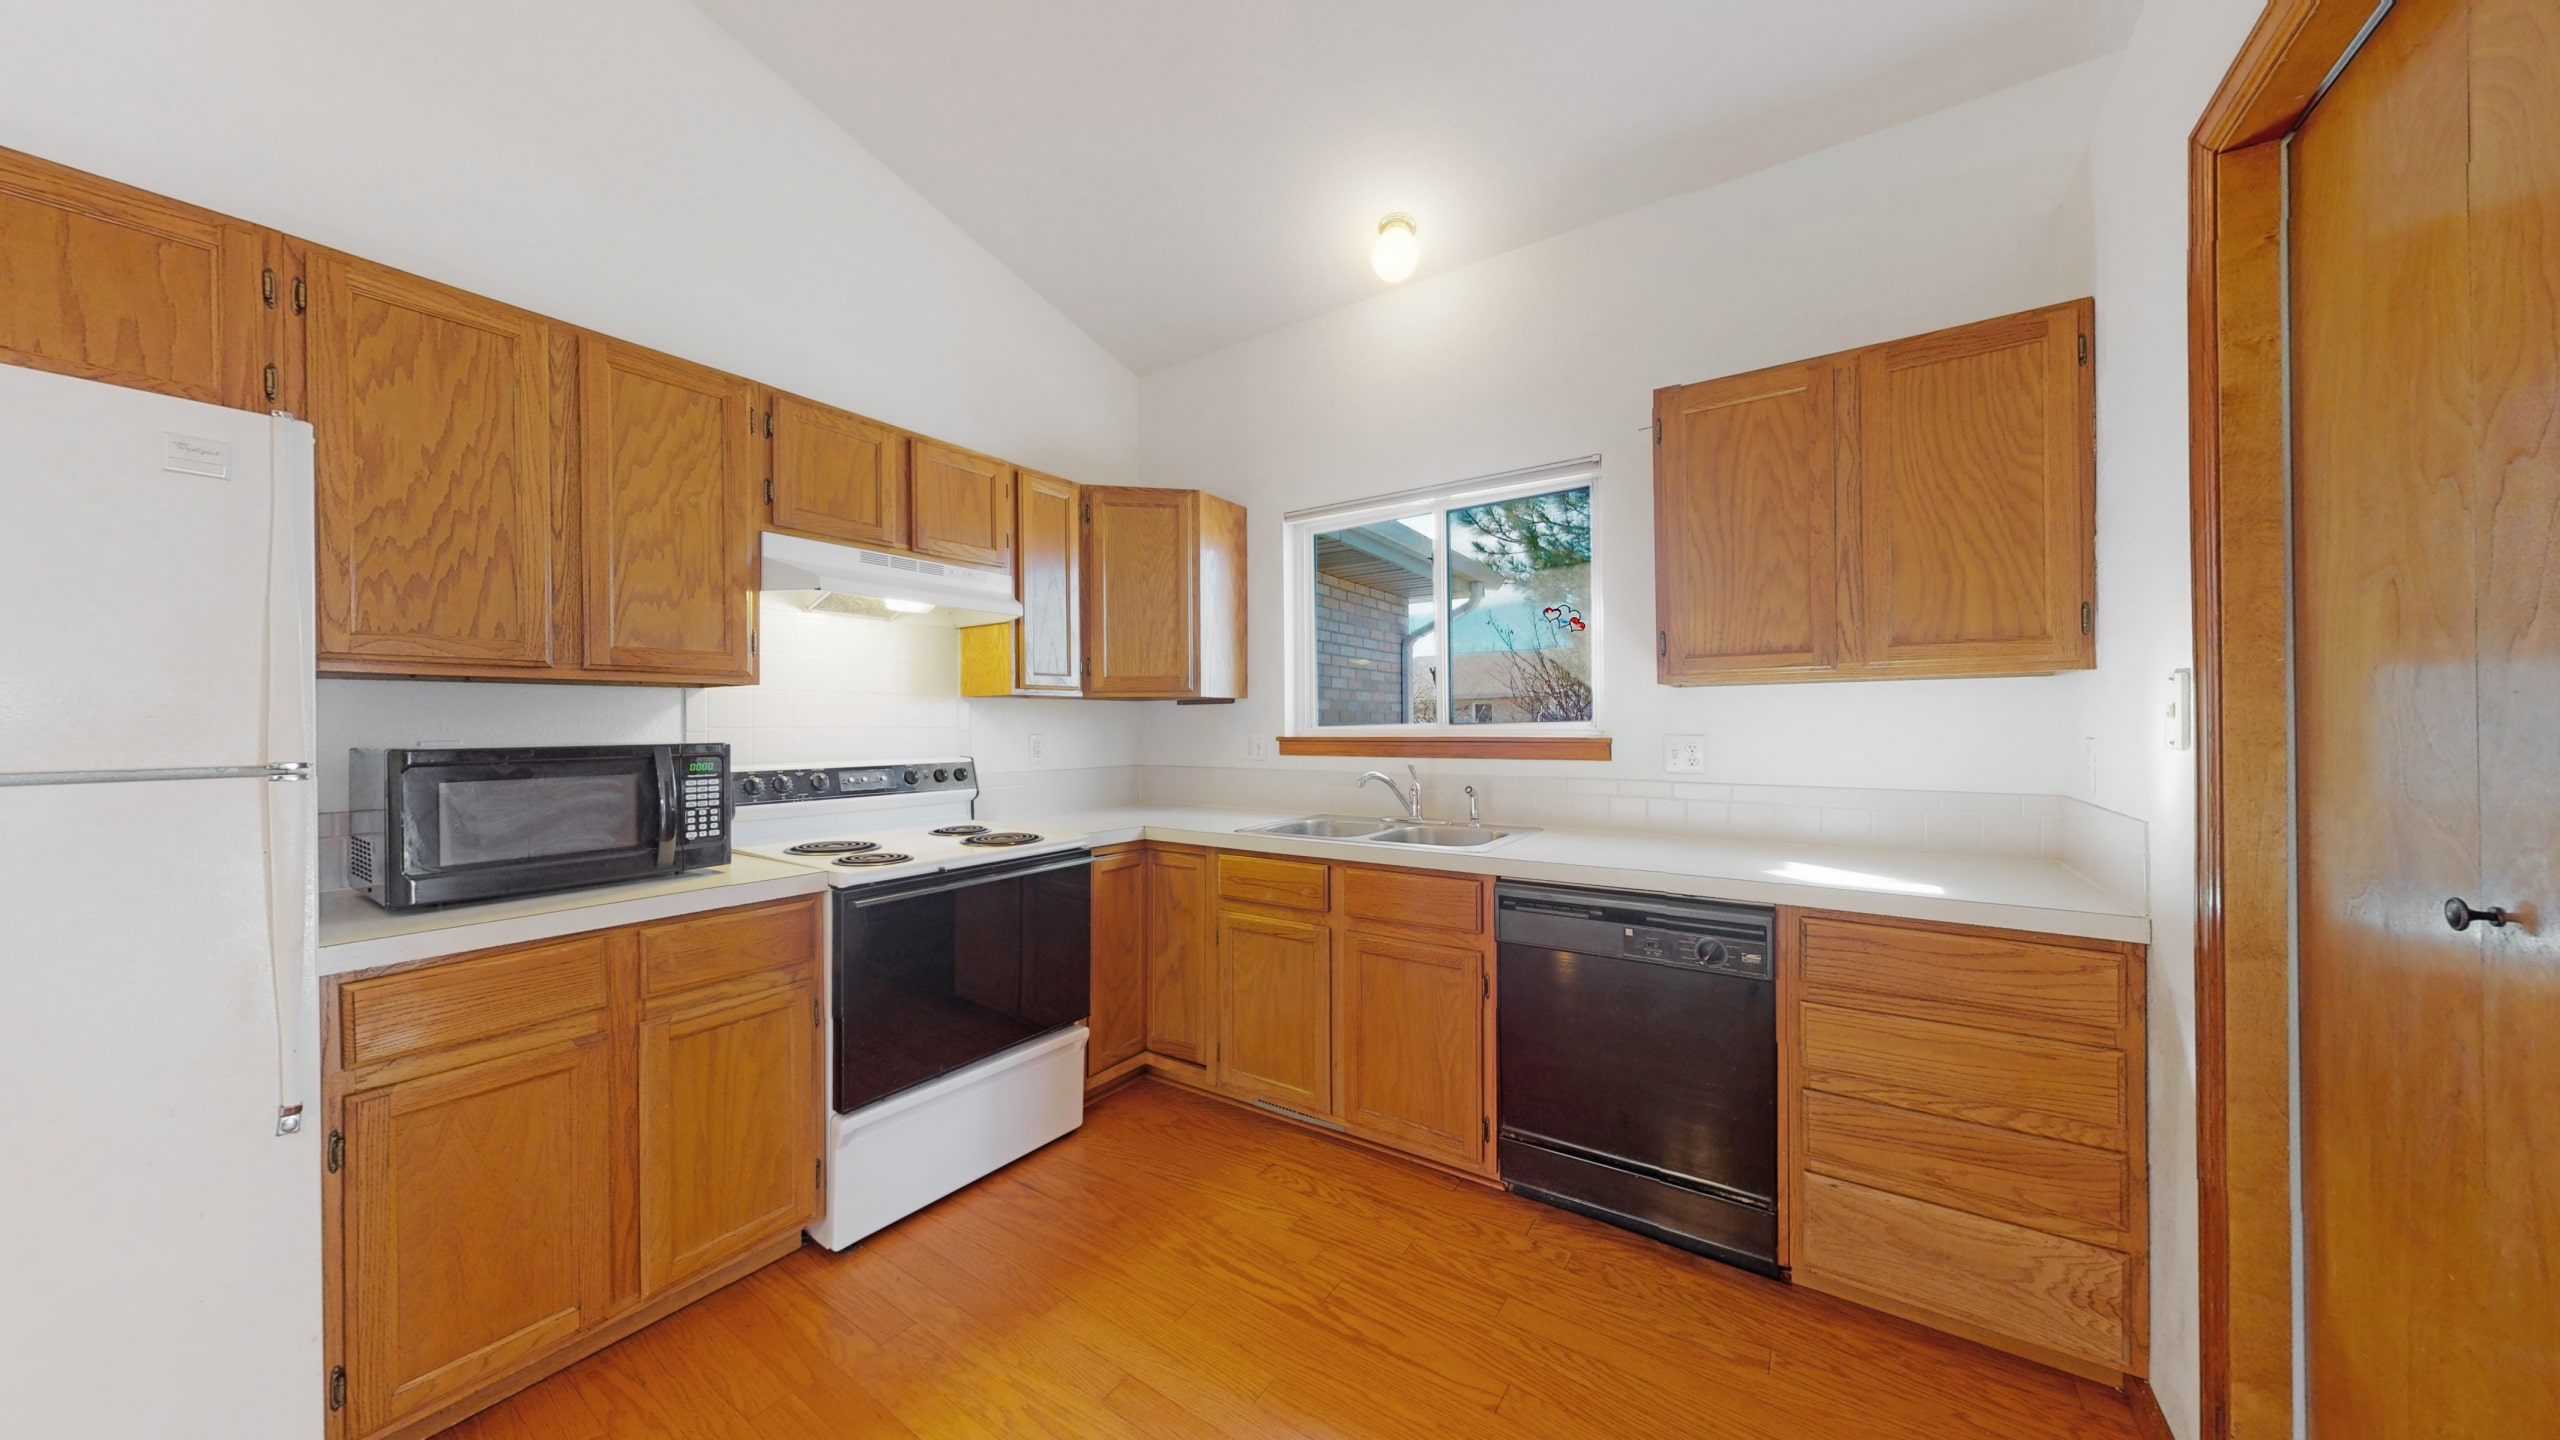 Brighton, CO house for sale with oak cabinets, white appliances, white walls